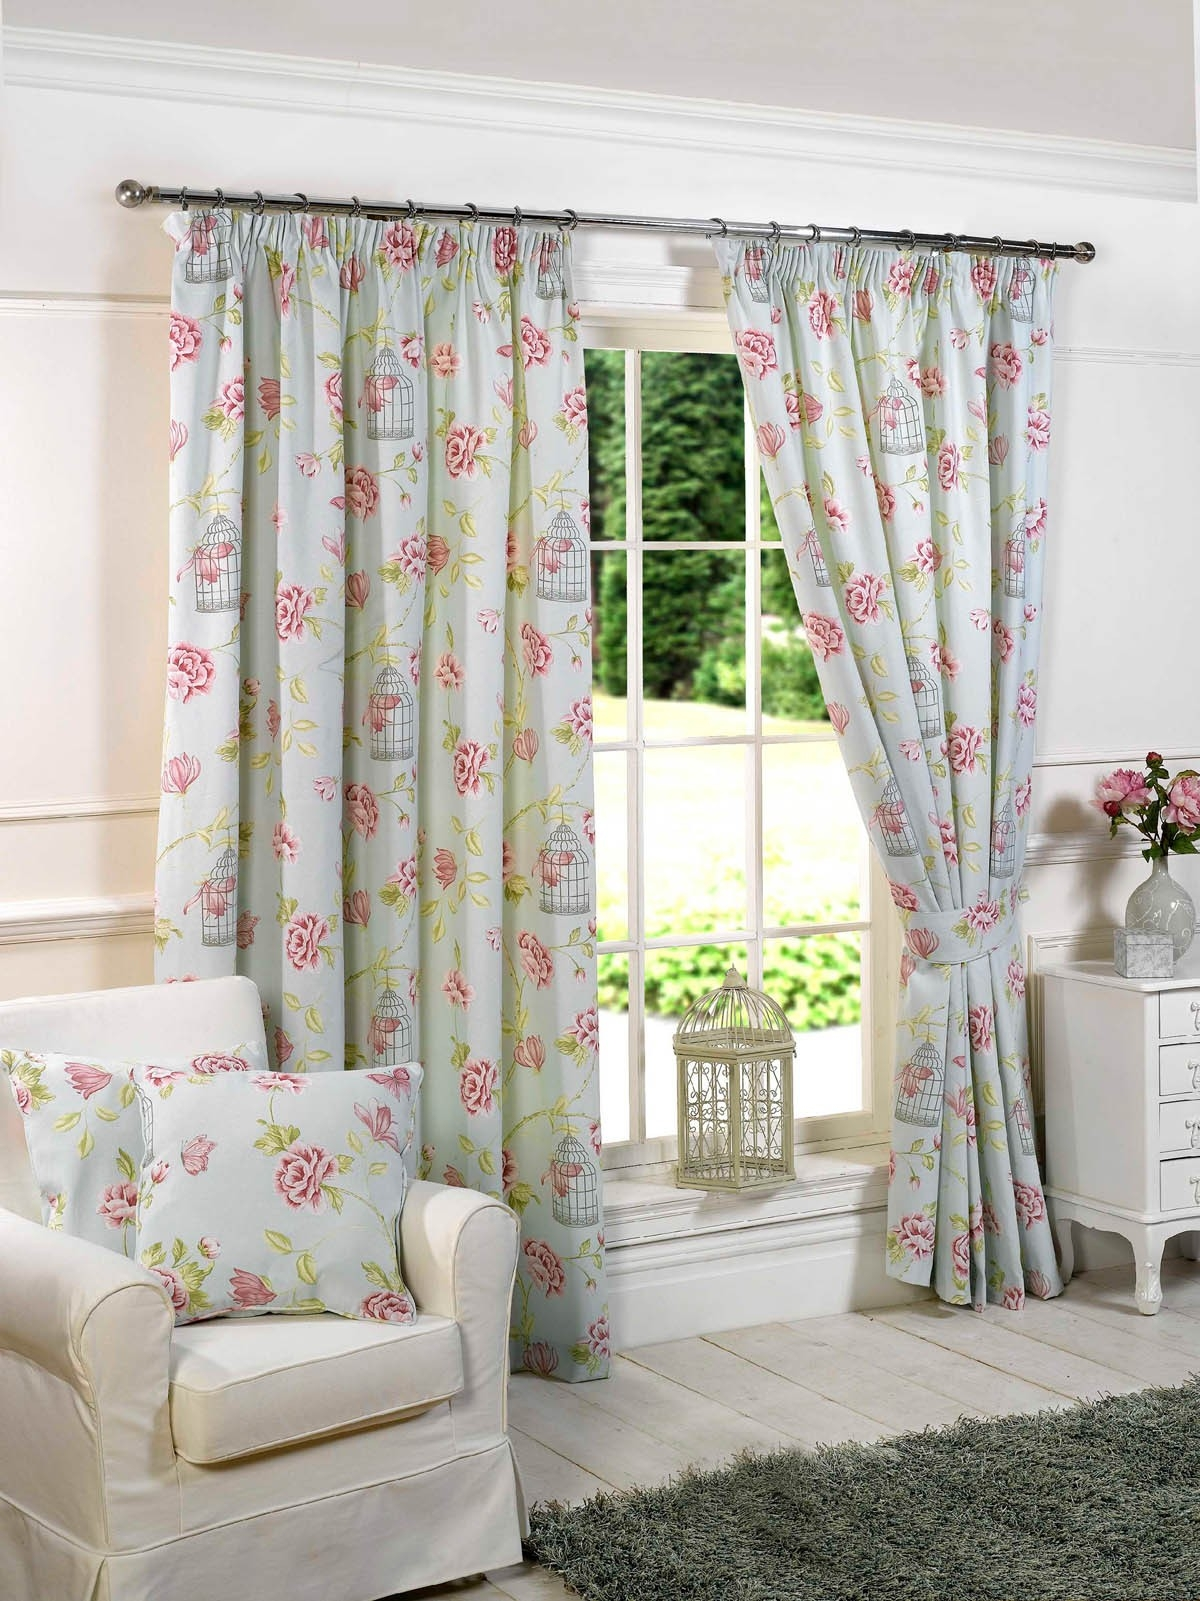 15 Best Ideas Ready Made Curtains for Bay Windows